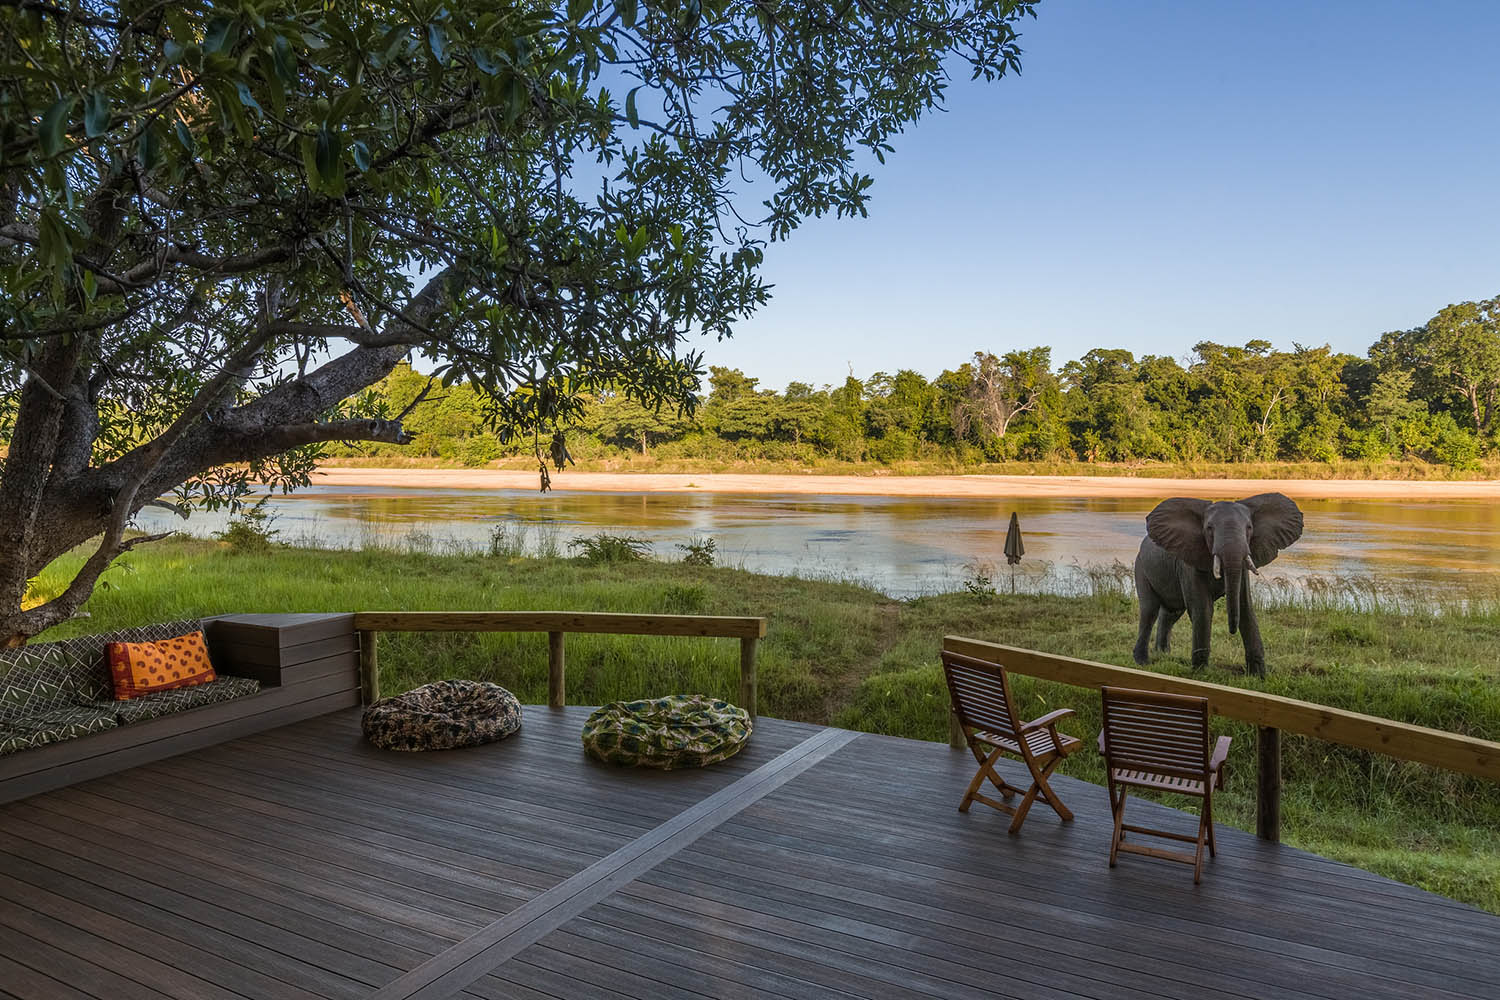 kapamba bushcamp lodge-zambia-in-style-safari-packages-lodges-south-luangwa-national-park-deck-view-elephant